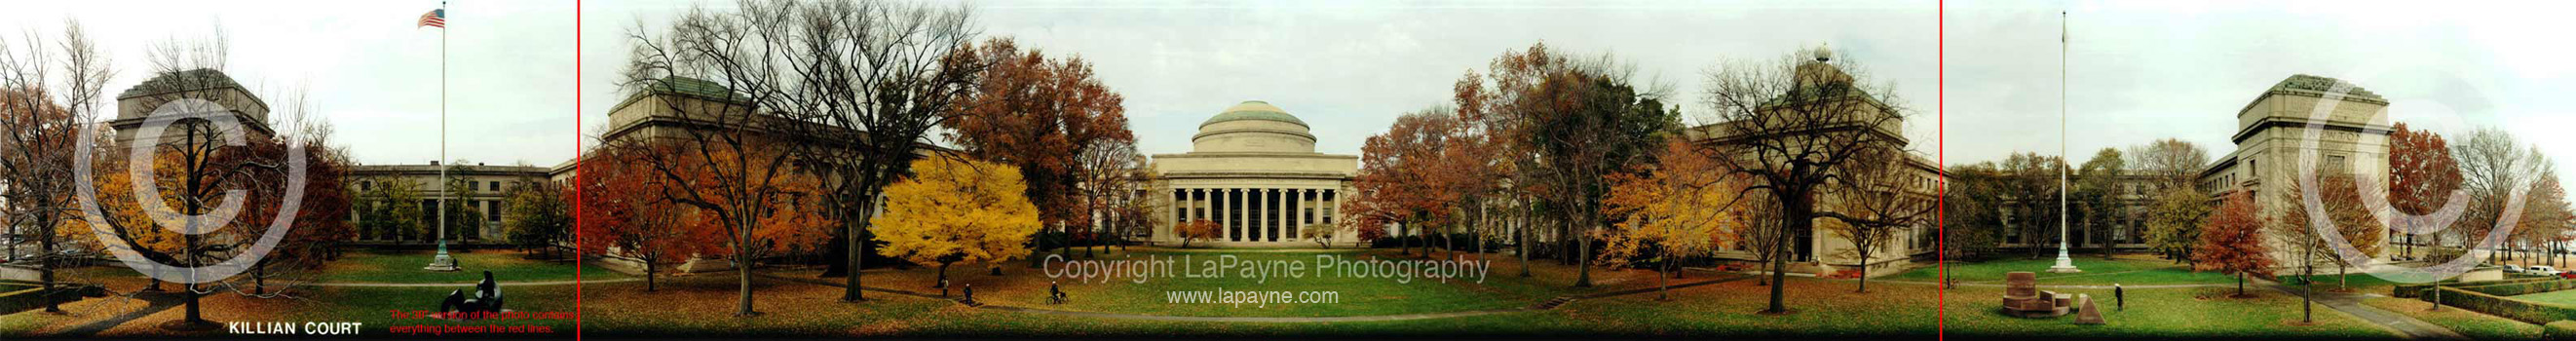 MIT Killian Court Panoramic